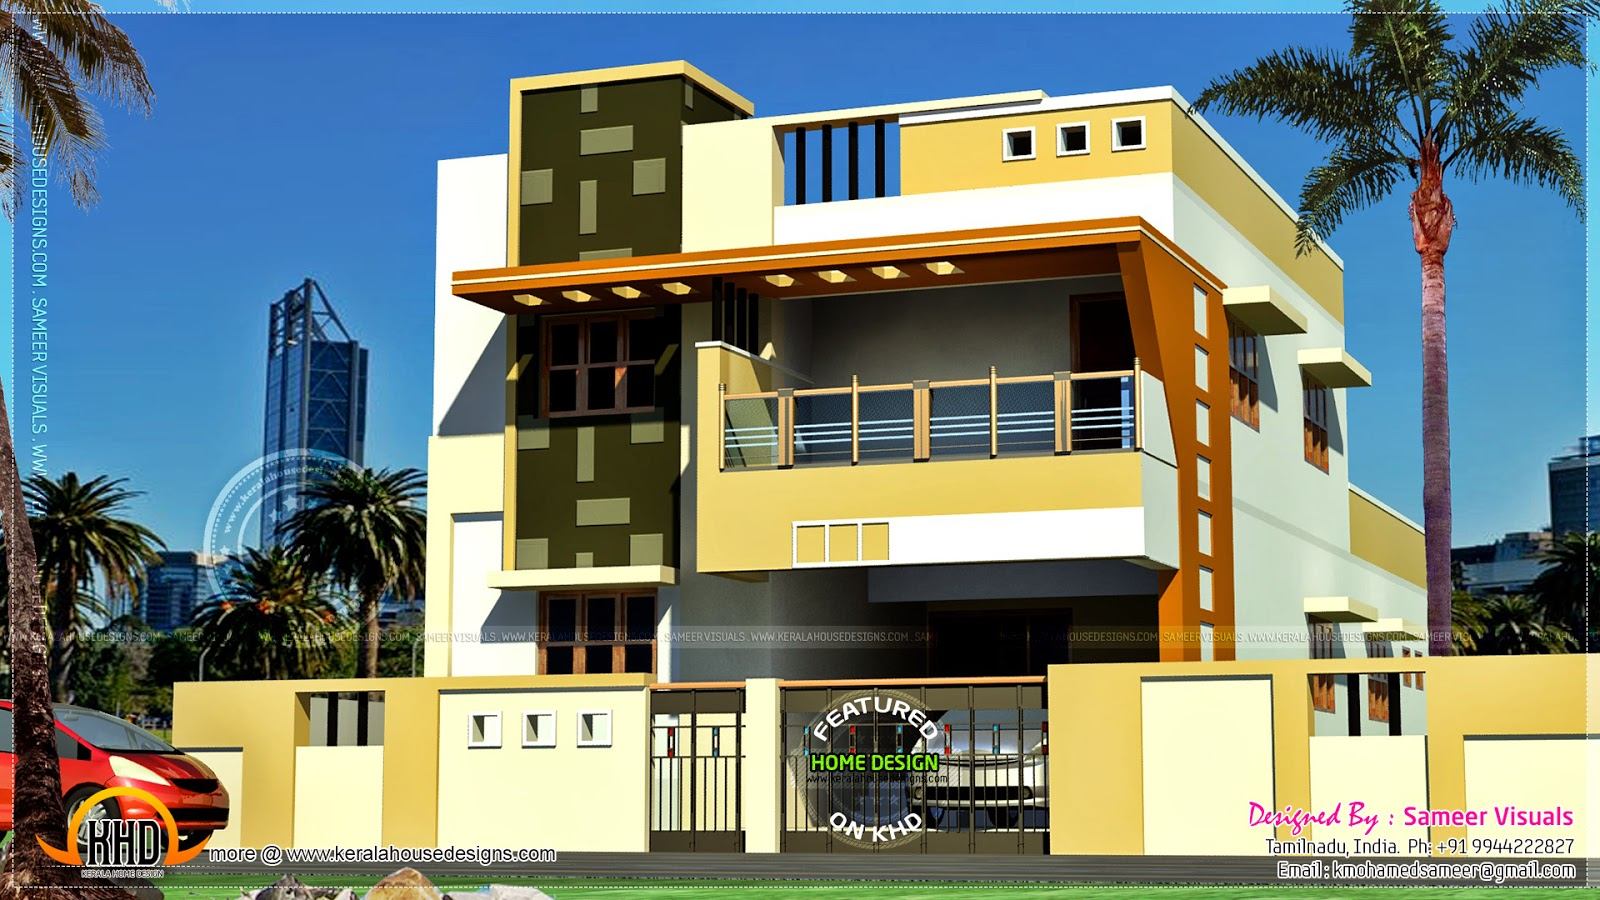 Modern south indian house design kerala home design and for Home front design indian style